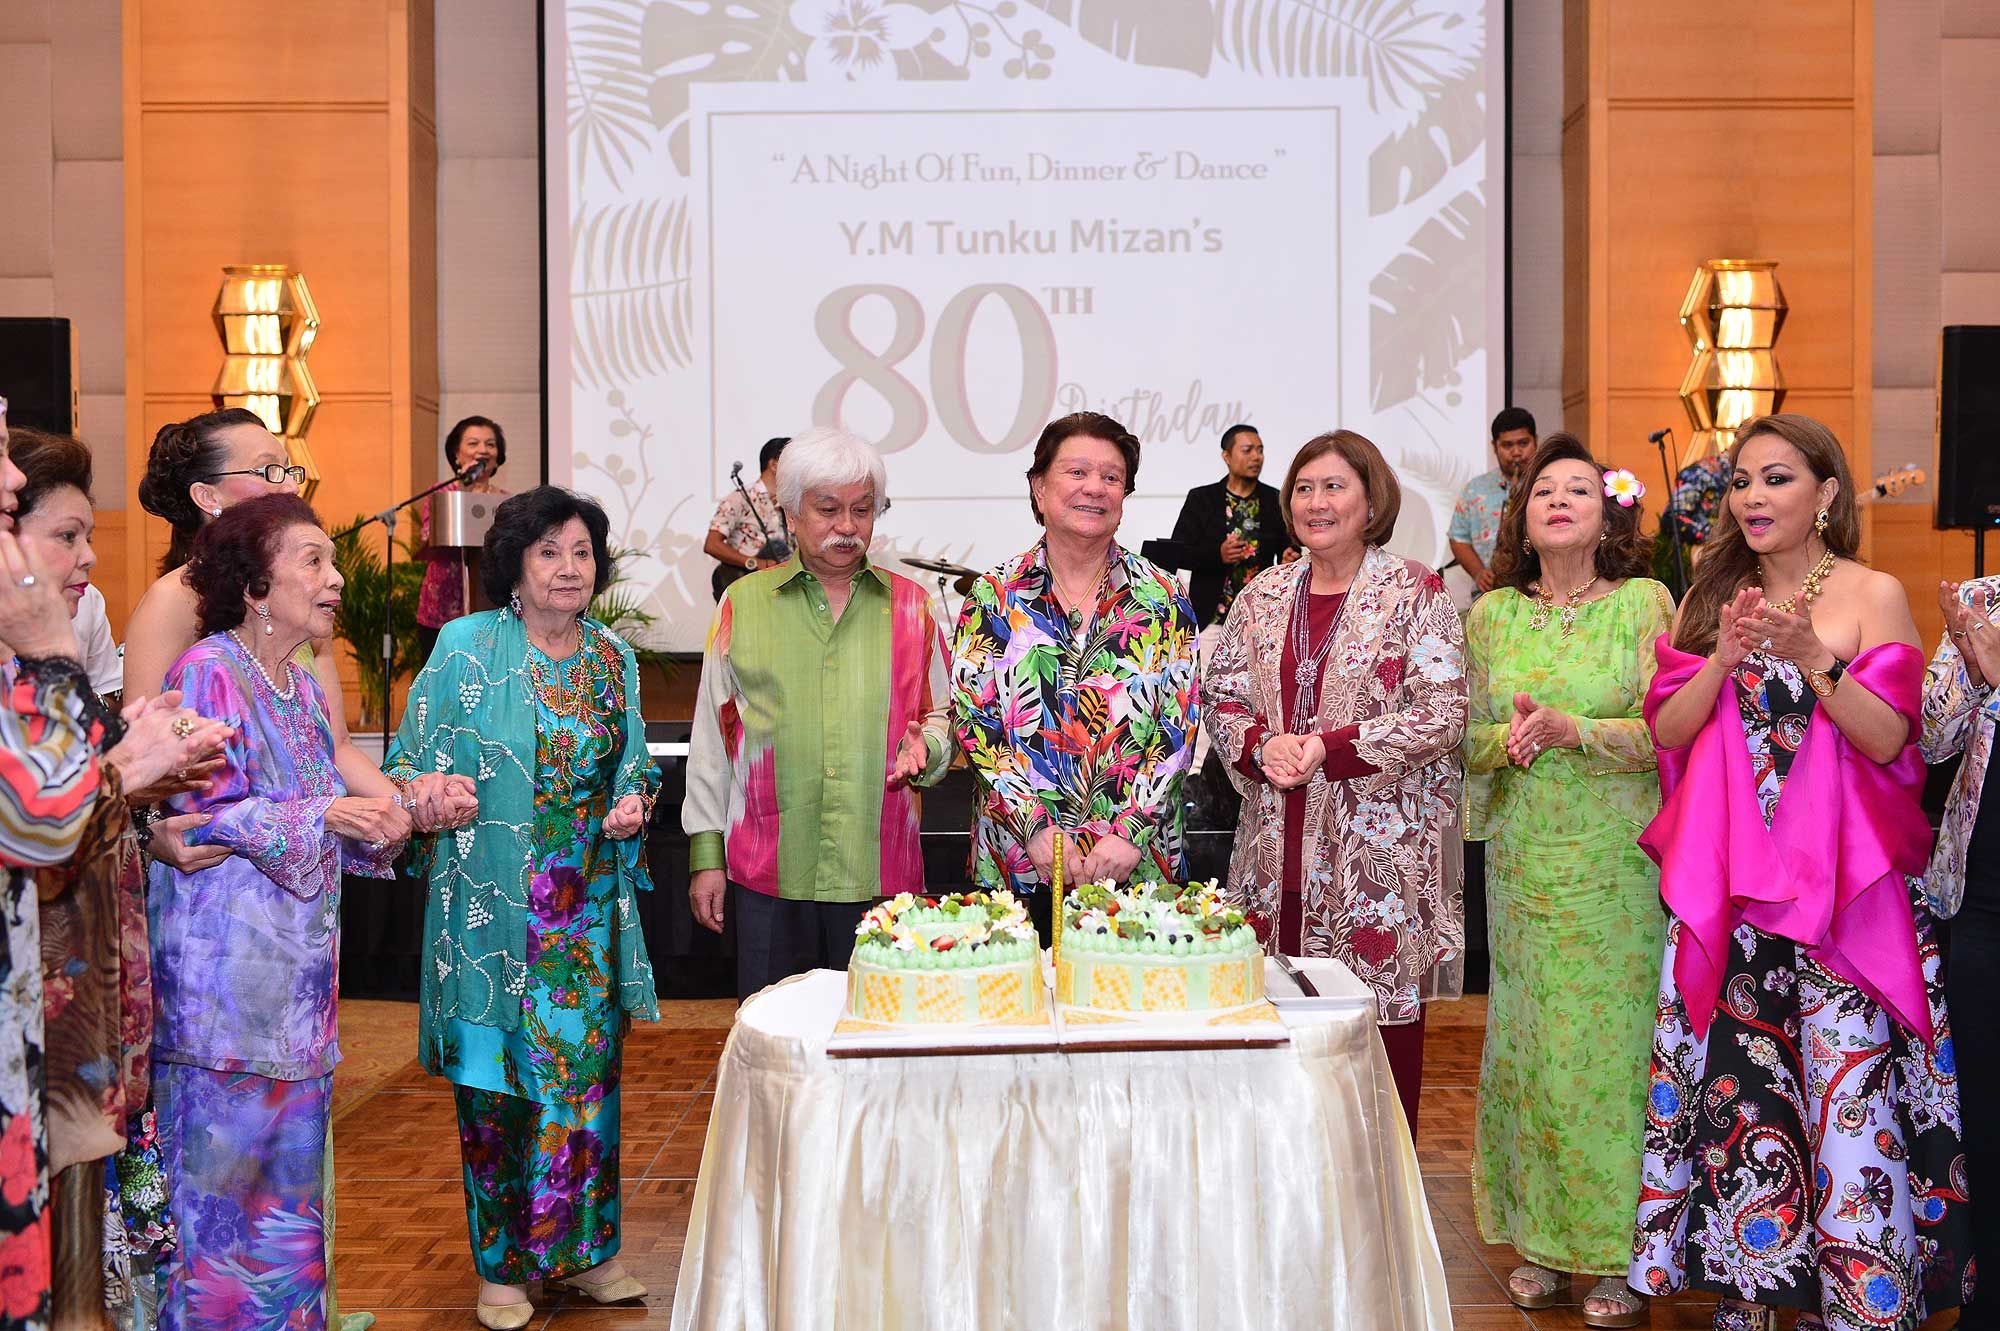 All royal and honoured guests came together to sing Tunku Mizan a happy birthday